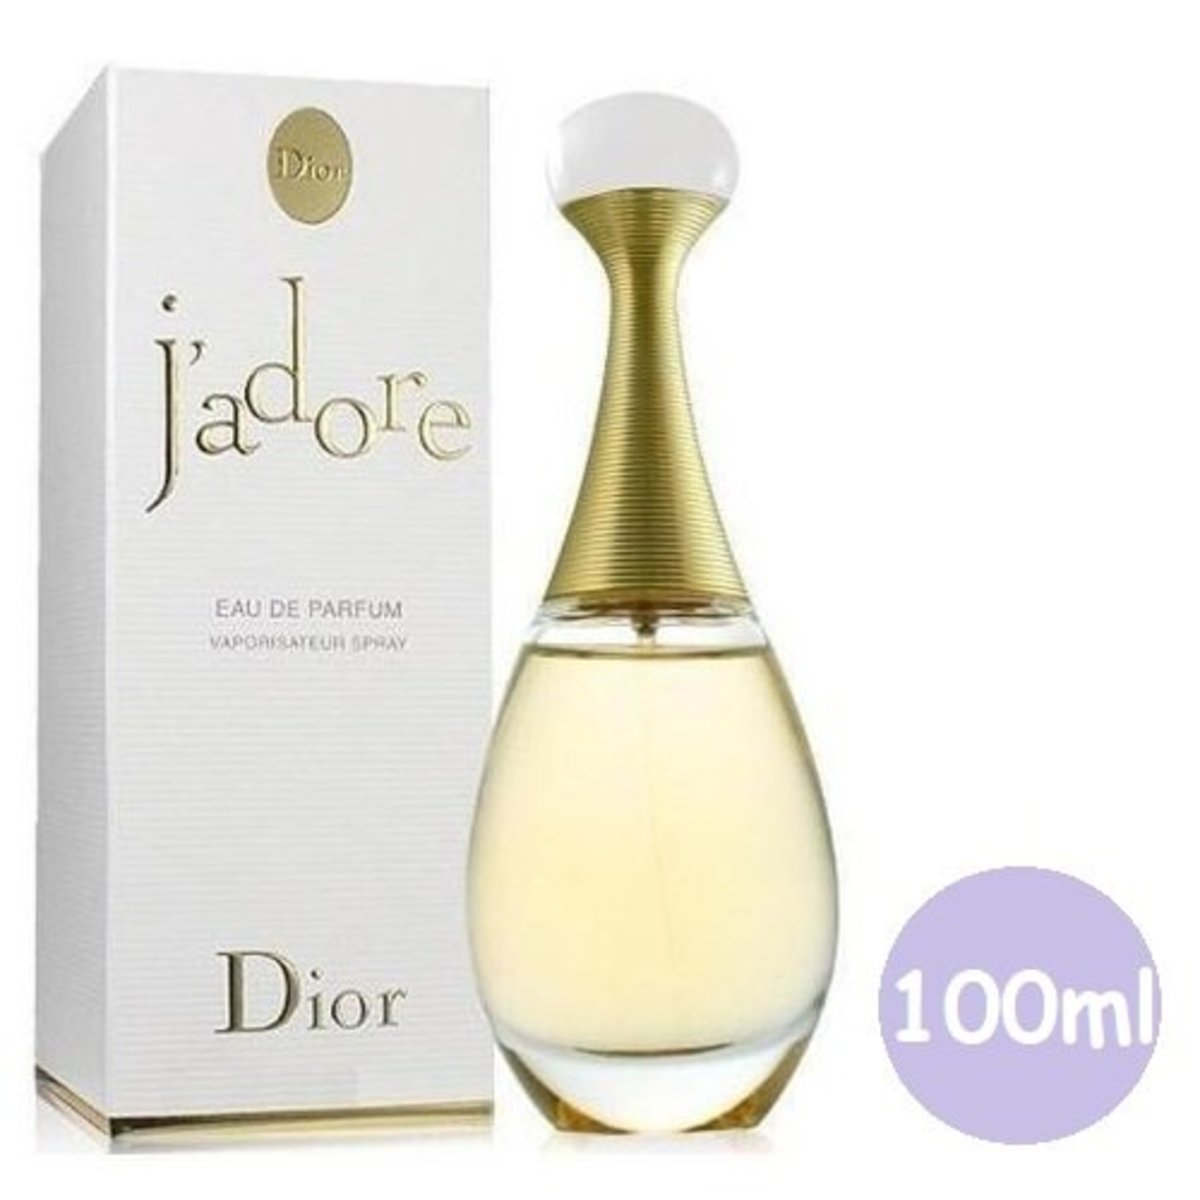 Dior J'adore Eau de Parfum 100ml  (3348900417878) (parallel import goods)